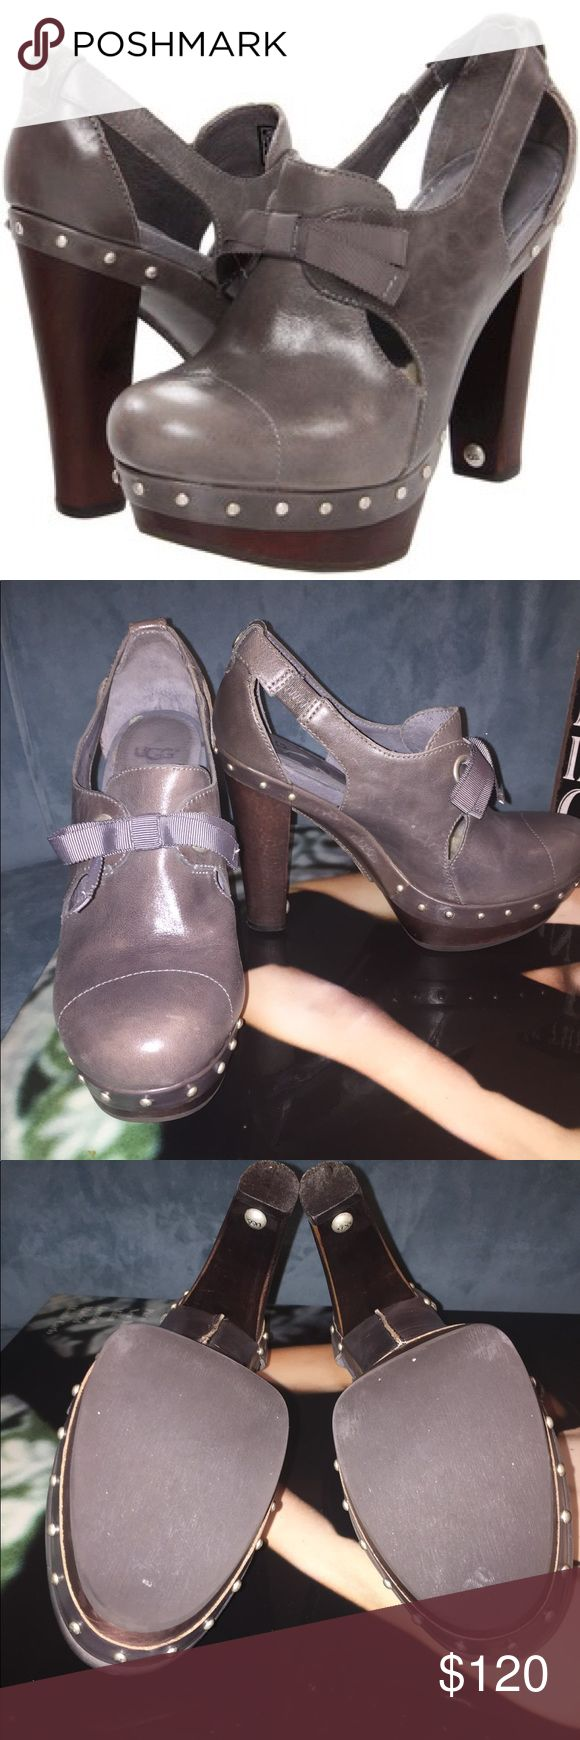 """💯 Authentic UGG Australia Celestina Heel NWOT 💯 UGG Australia Celestina High Heel Clog. Charcoal Leather Gray with Studs and Bows. Feminine ribbon flirts up the rustic edge of a sumptuous, shearling-lined pump. NEVER BEEN WORN. 4"""" Heel. Hurry, these will go fast!!! Run on the smaller side, recommend for 7.5-8, might not fit wide feet well. UGG Shoes Heels"""